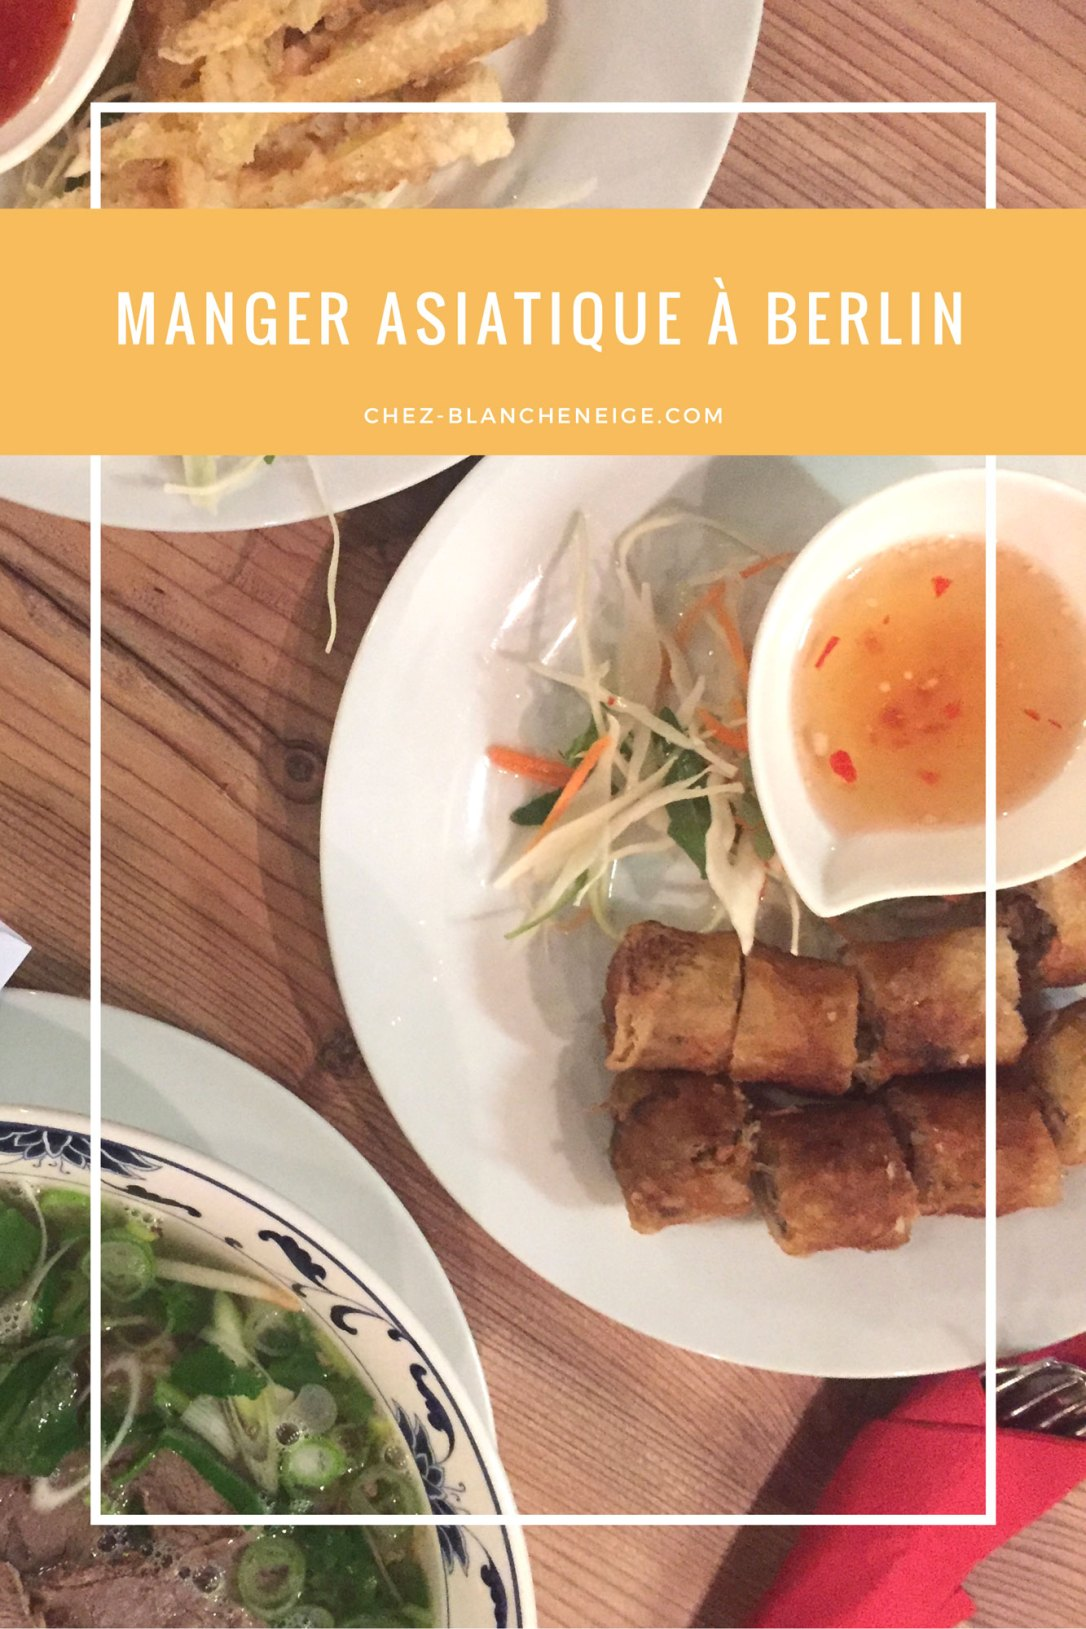 Manger-asiatique-à-berlin-1.jpg